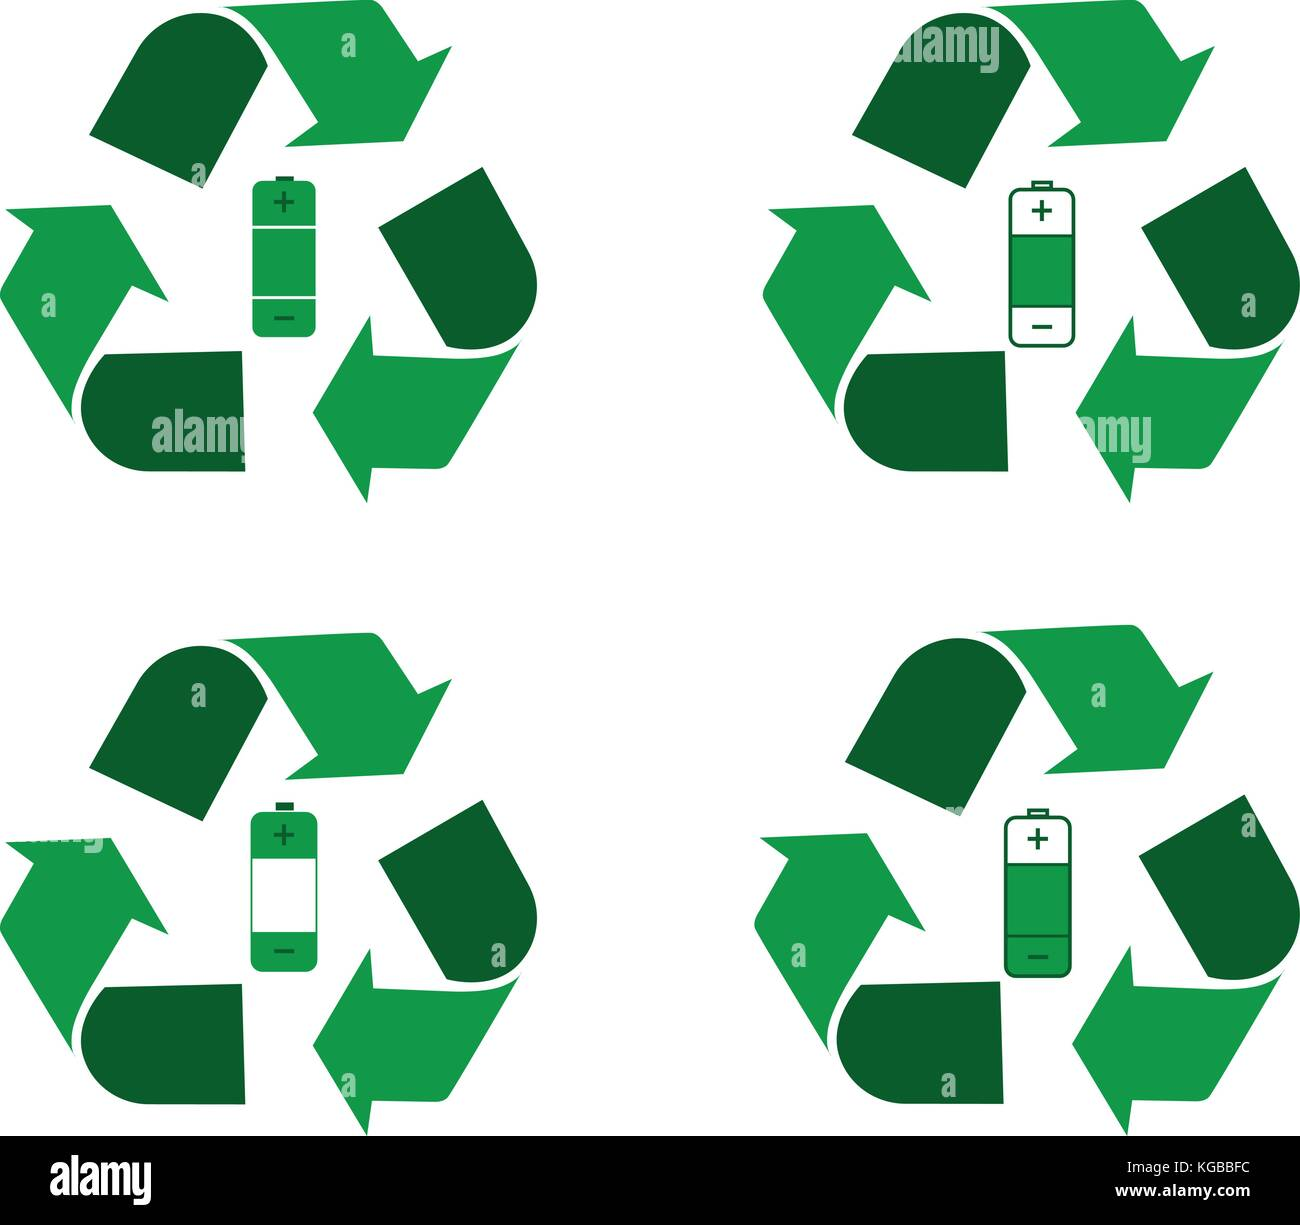 Recycling logo stock photos recycling logo stock images alamy battery recycling logo stock image biocorpaavc